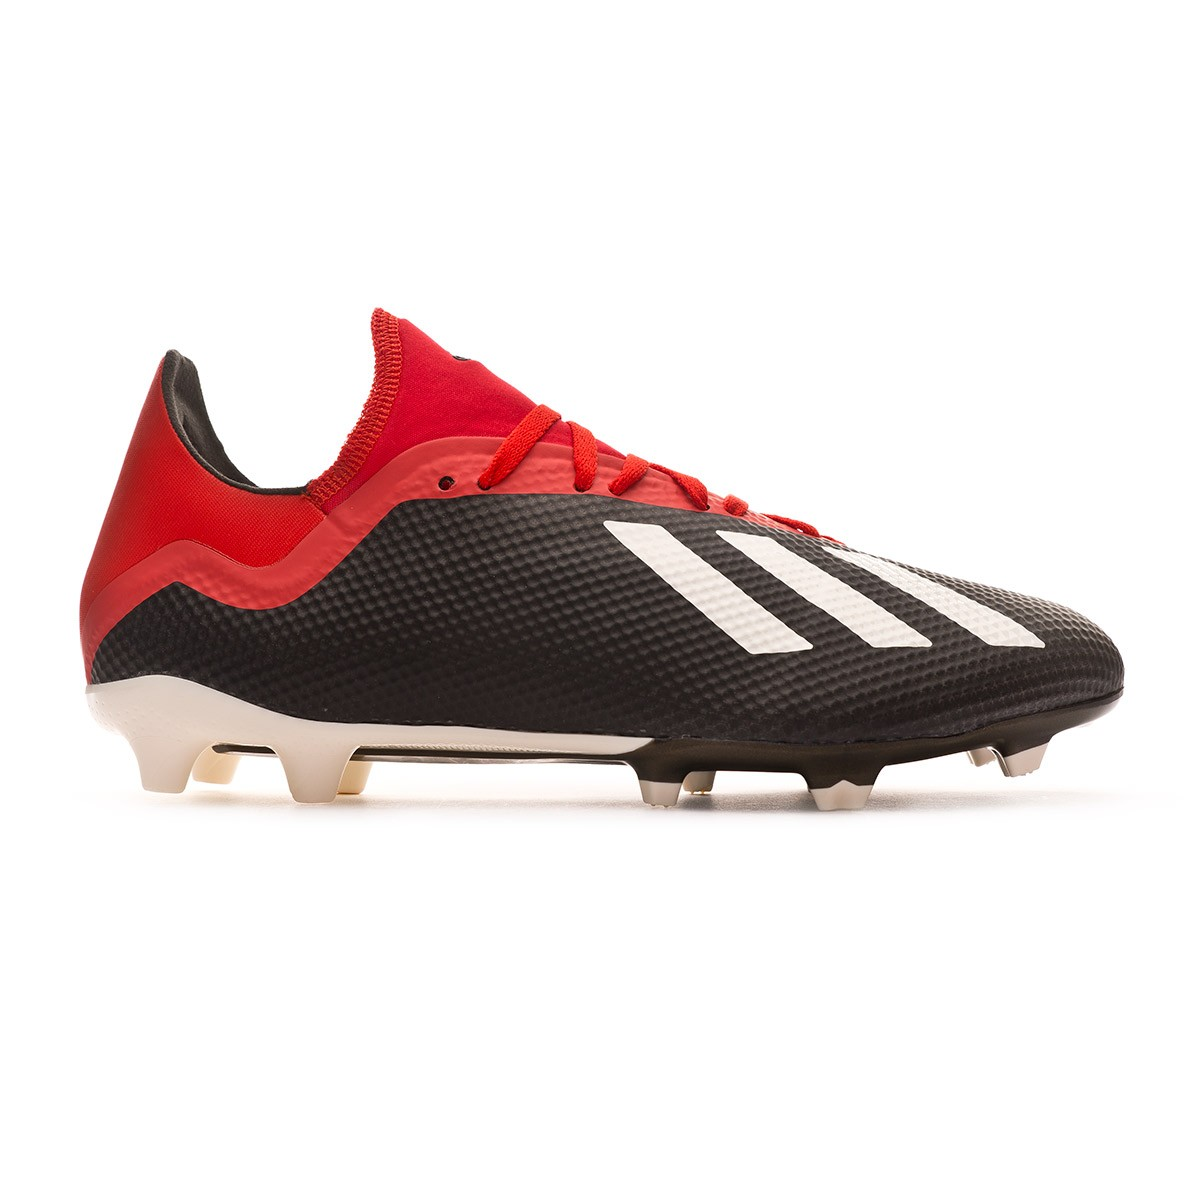 ... Bota X 18.3 FG Core black-Off white-Grey four. CATEGORY. Football boots  · adidas football boots 5519a3f932cae